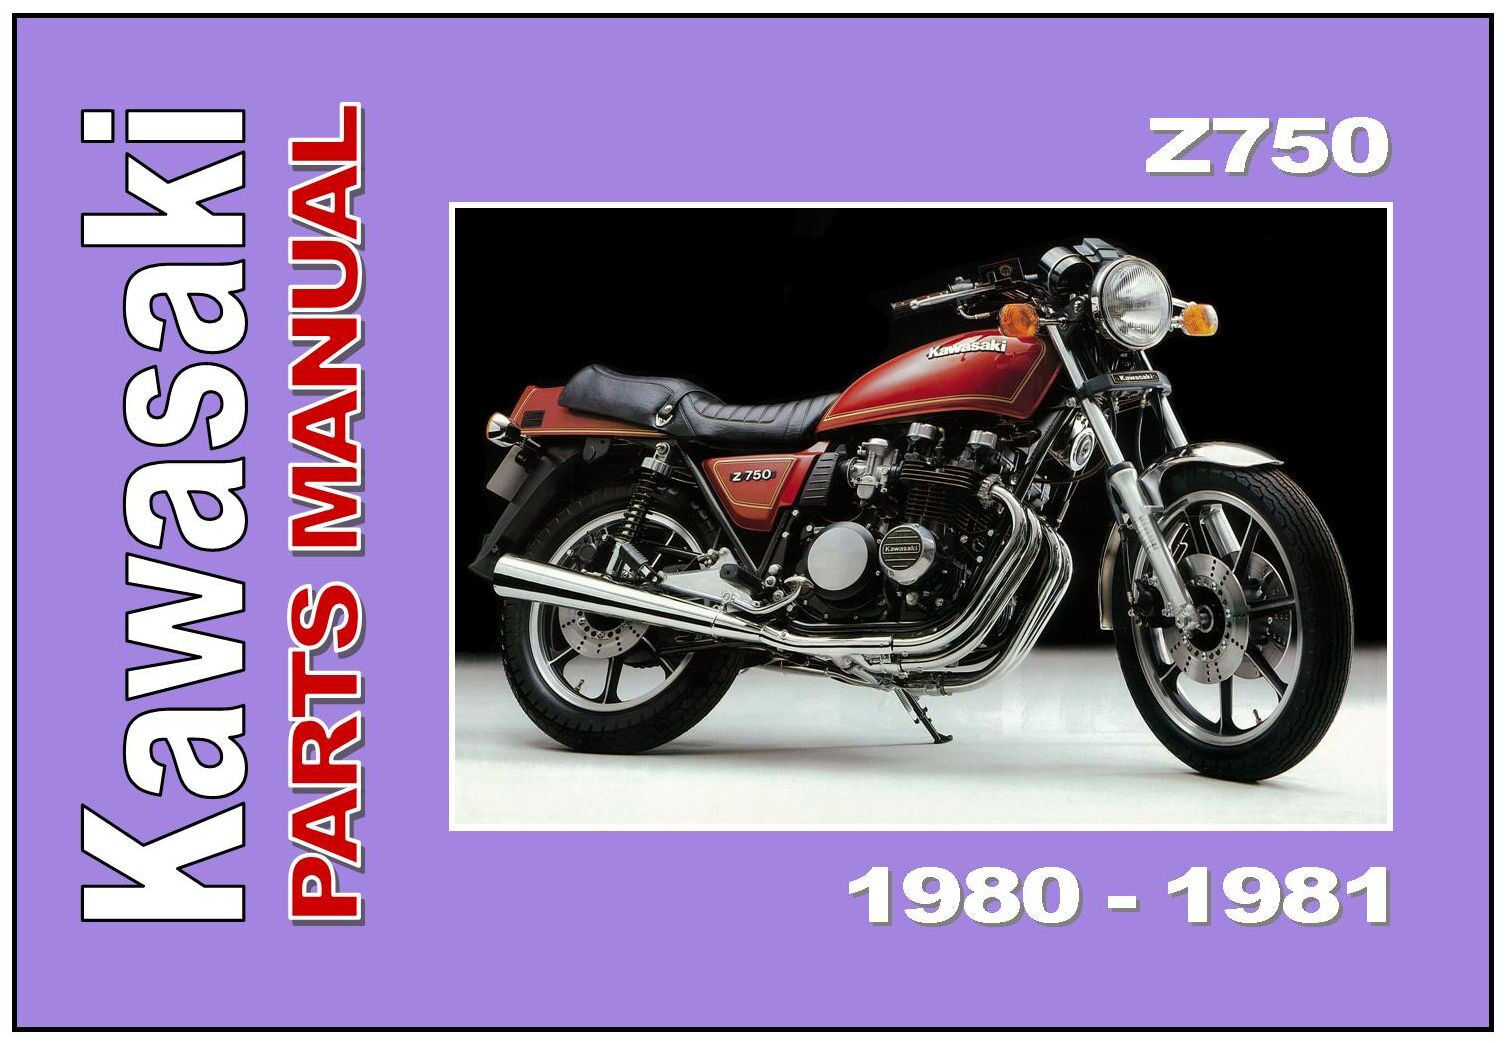 Kawasaki Parts Manual Kz750 Z750 Kz750e Z750e 1980 And 1981 Spares Four Wiring Diagram 1 Of 4only Available